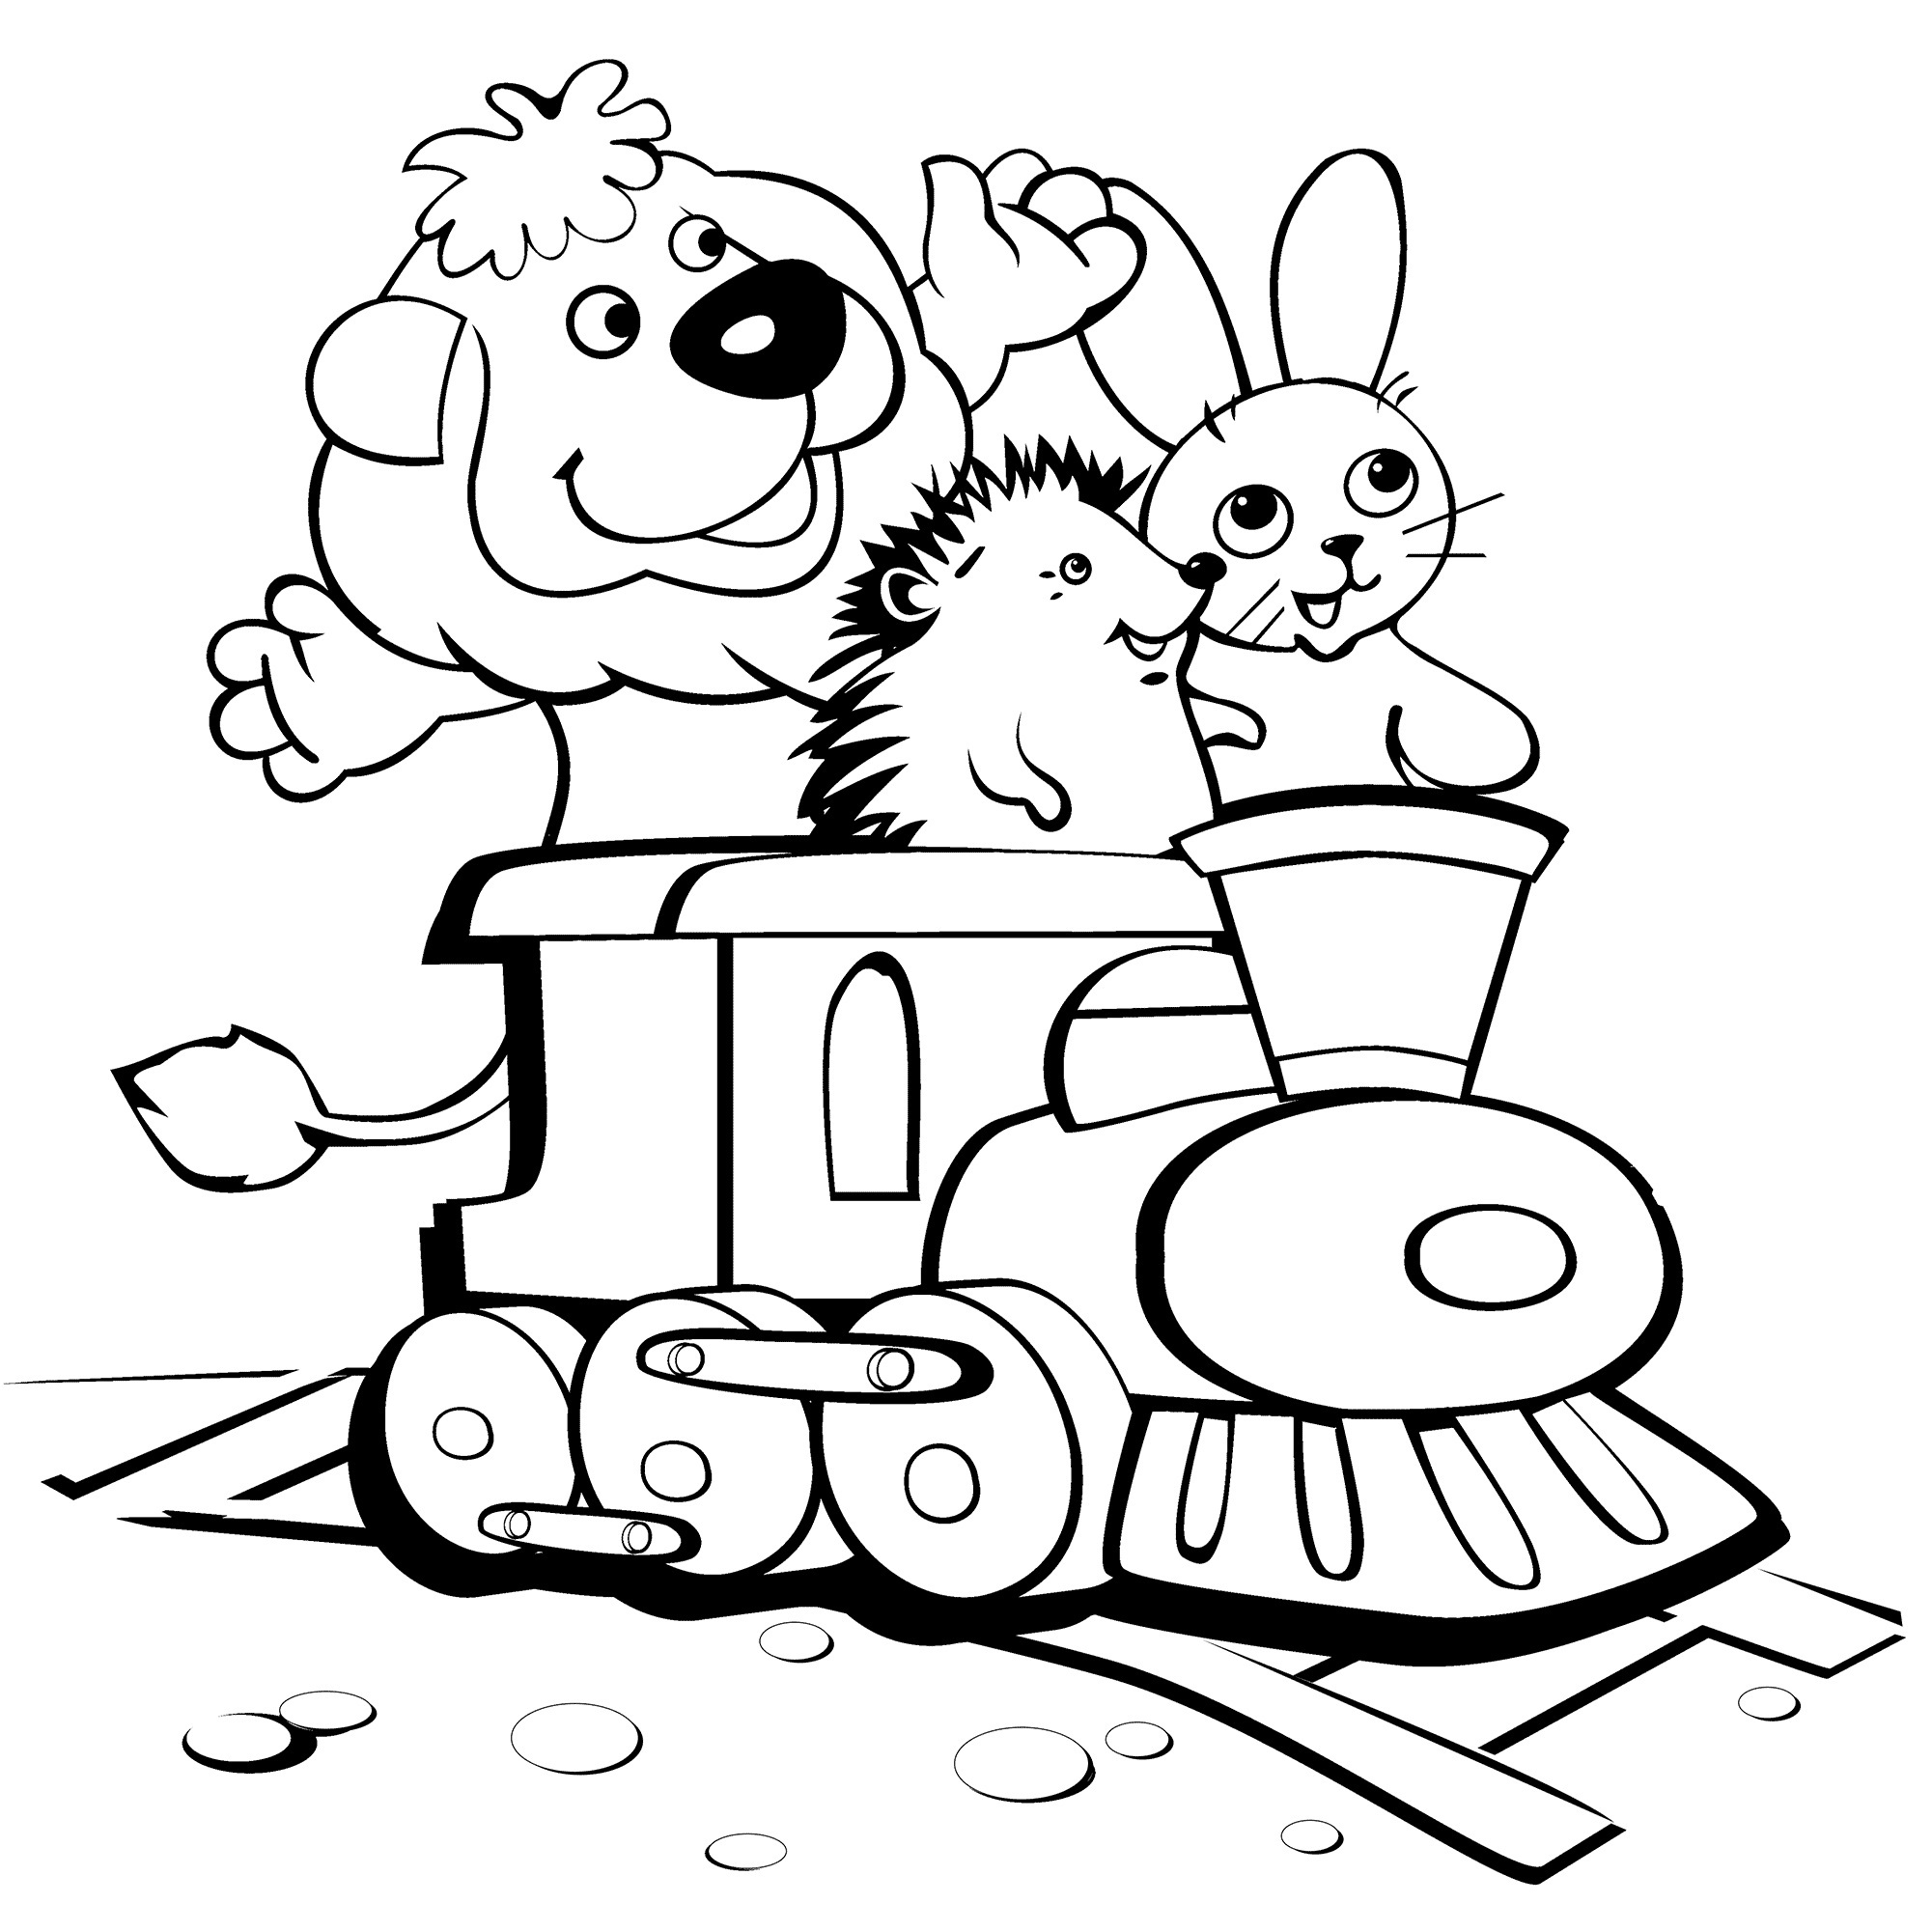 coloring page for toddlers - free printable funny coloring pages for kids